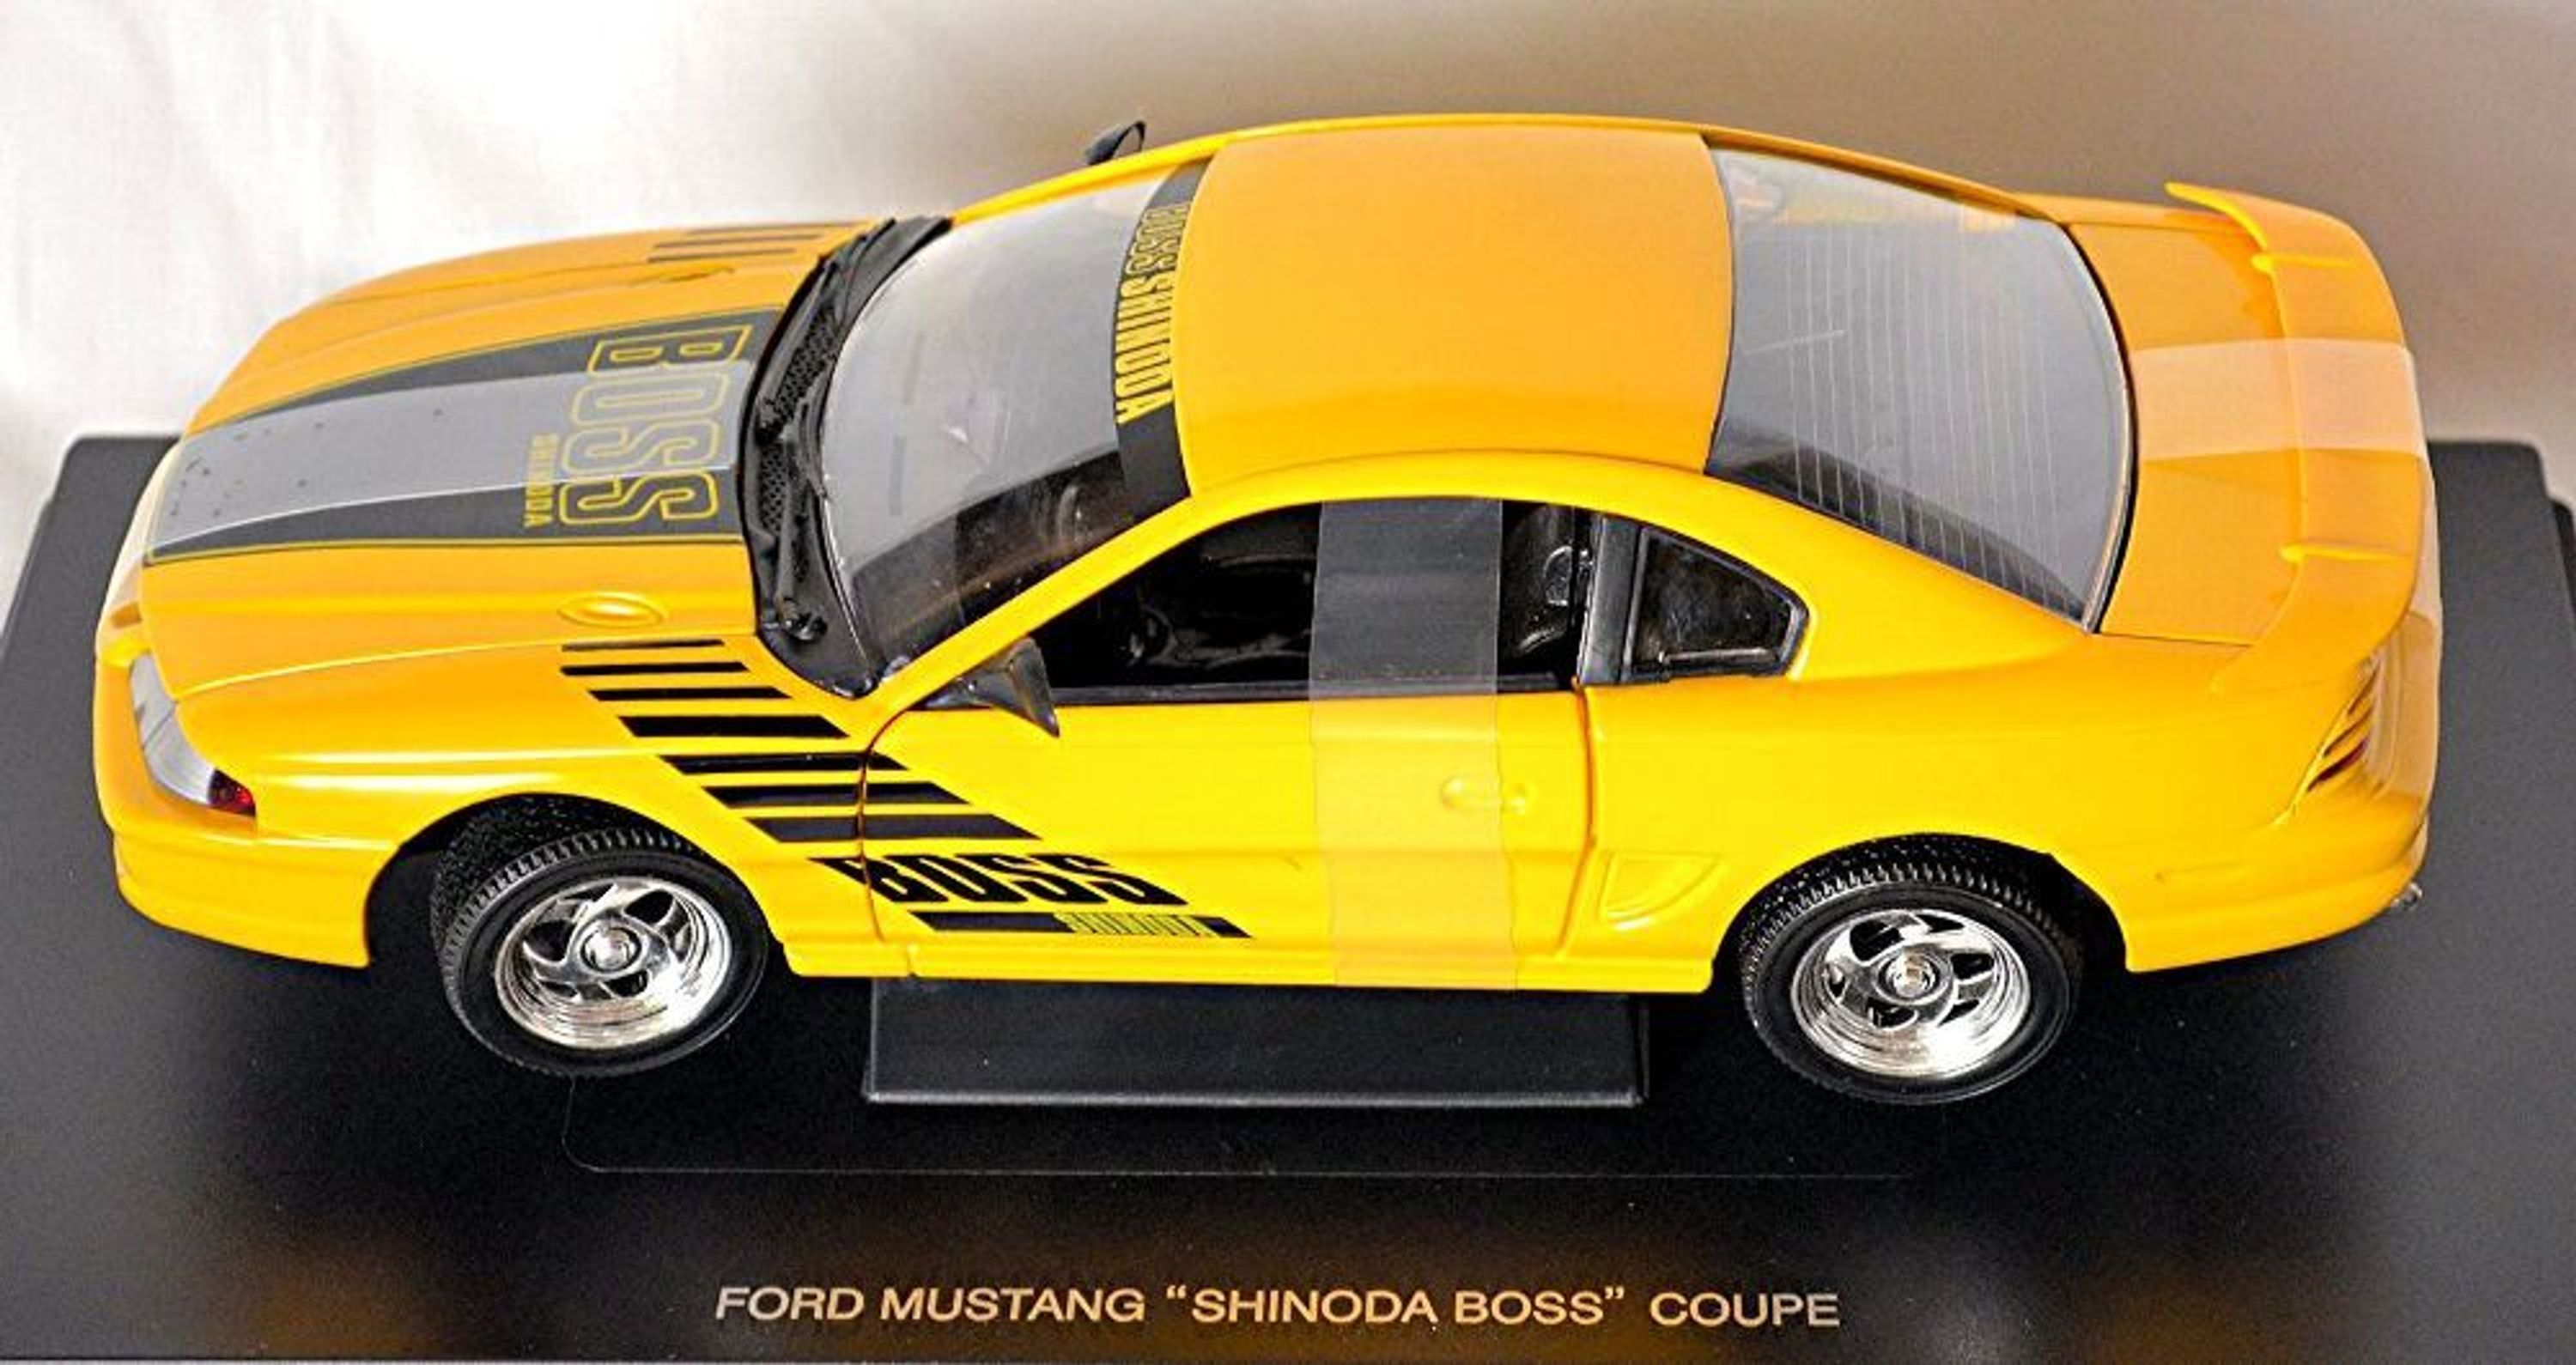 ford mustang iv shinoda boss coupe 1994 98 gelb yellow 1. Black Bedroom Furniture Sets. Home Design Ideas